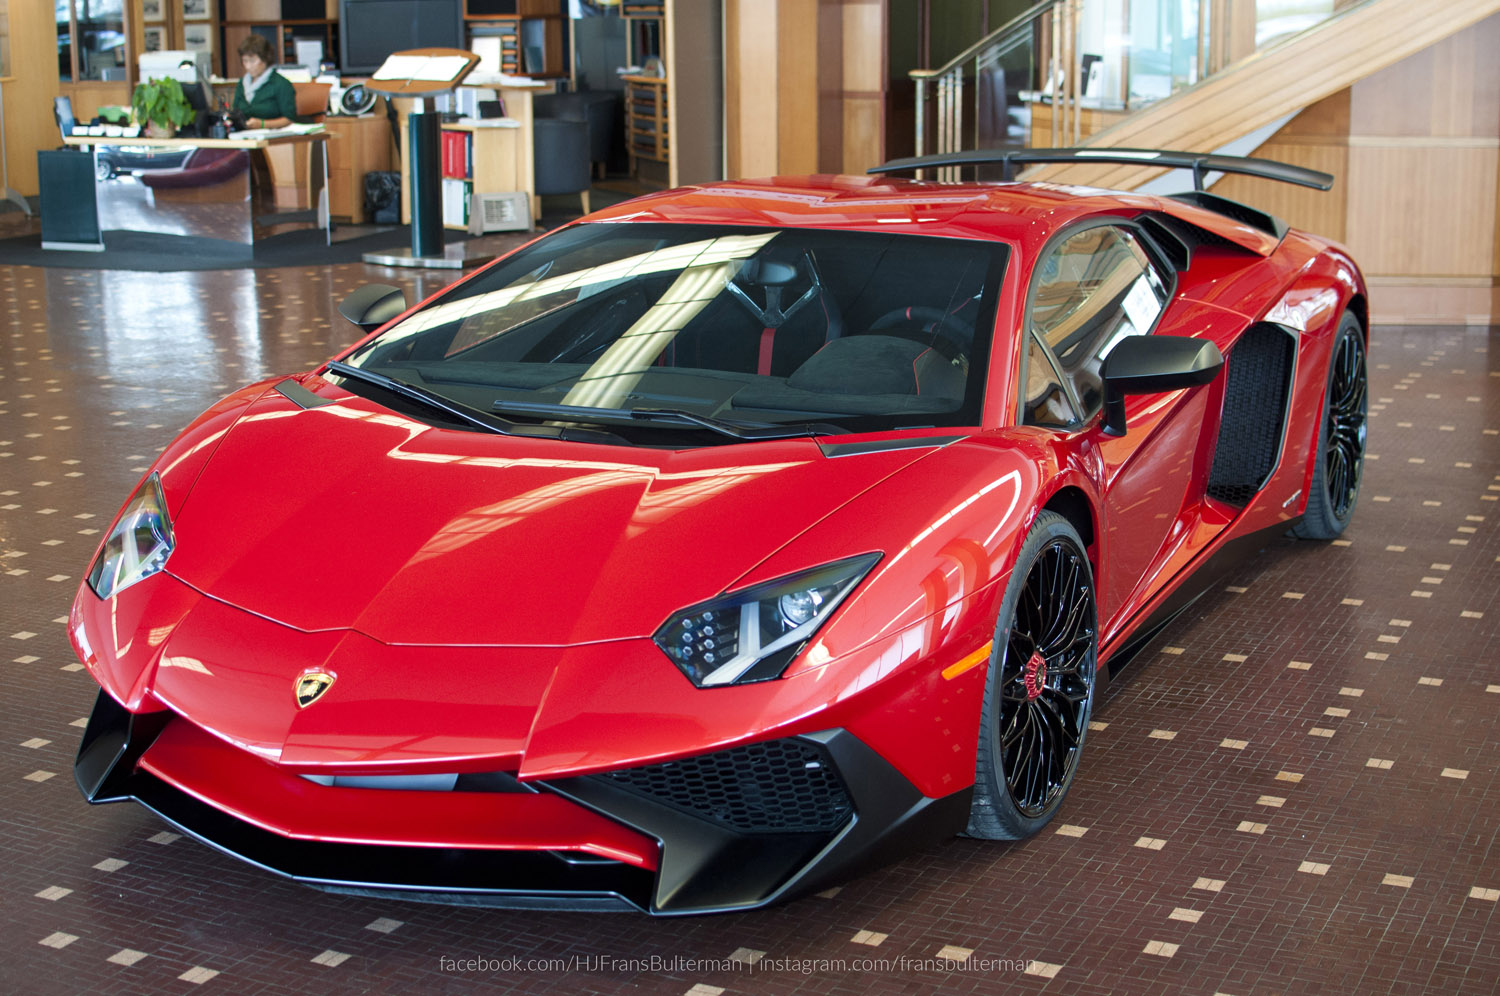 Lamborghini Aventador Lp750 4 Superveloce Shows Up In San